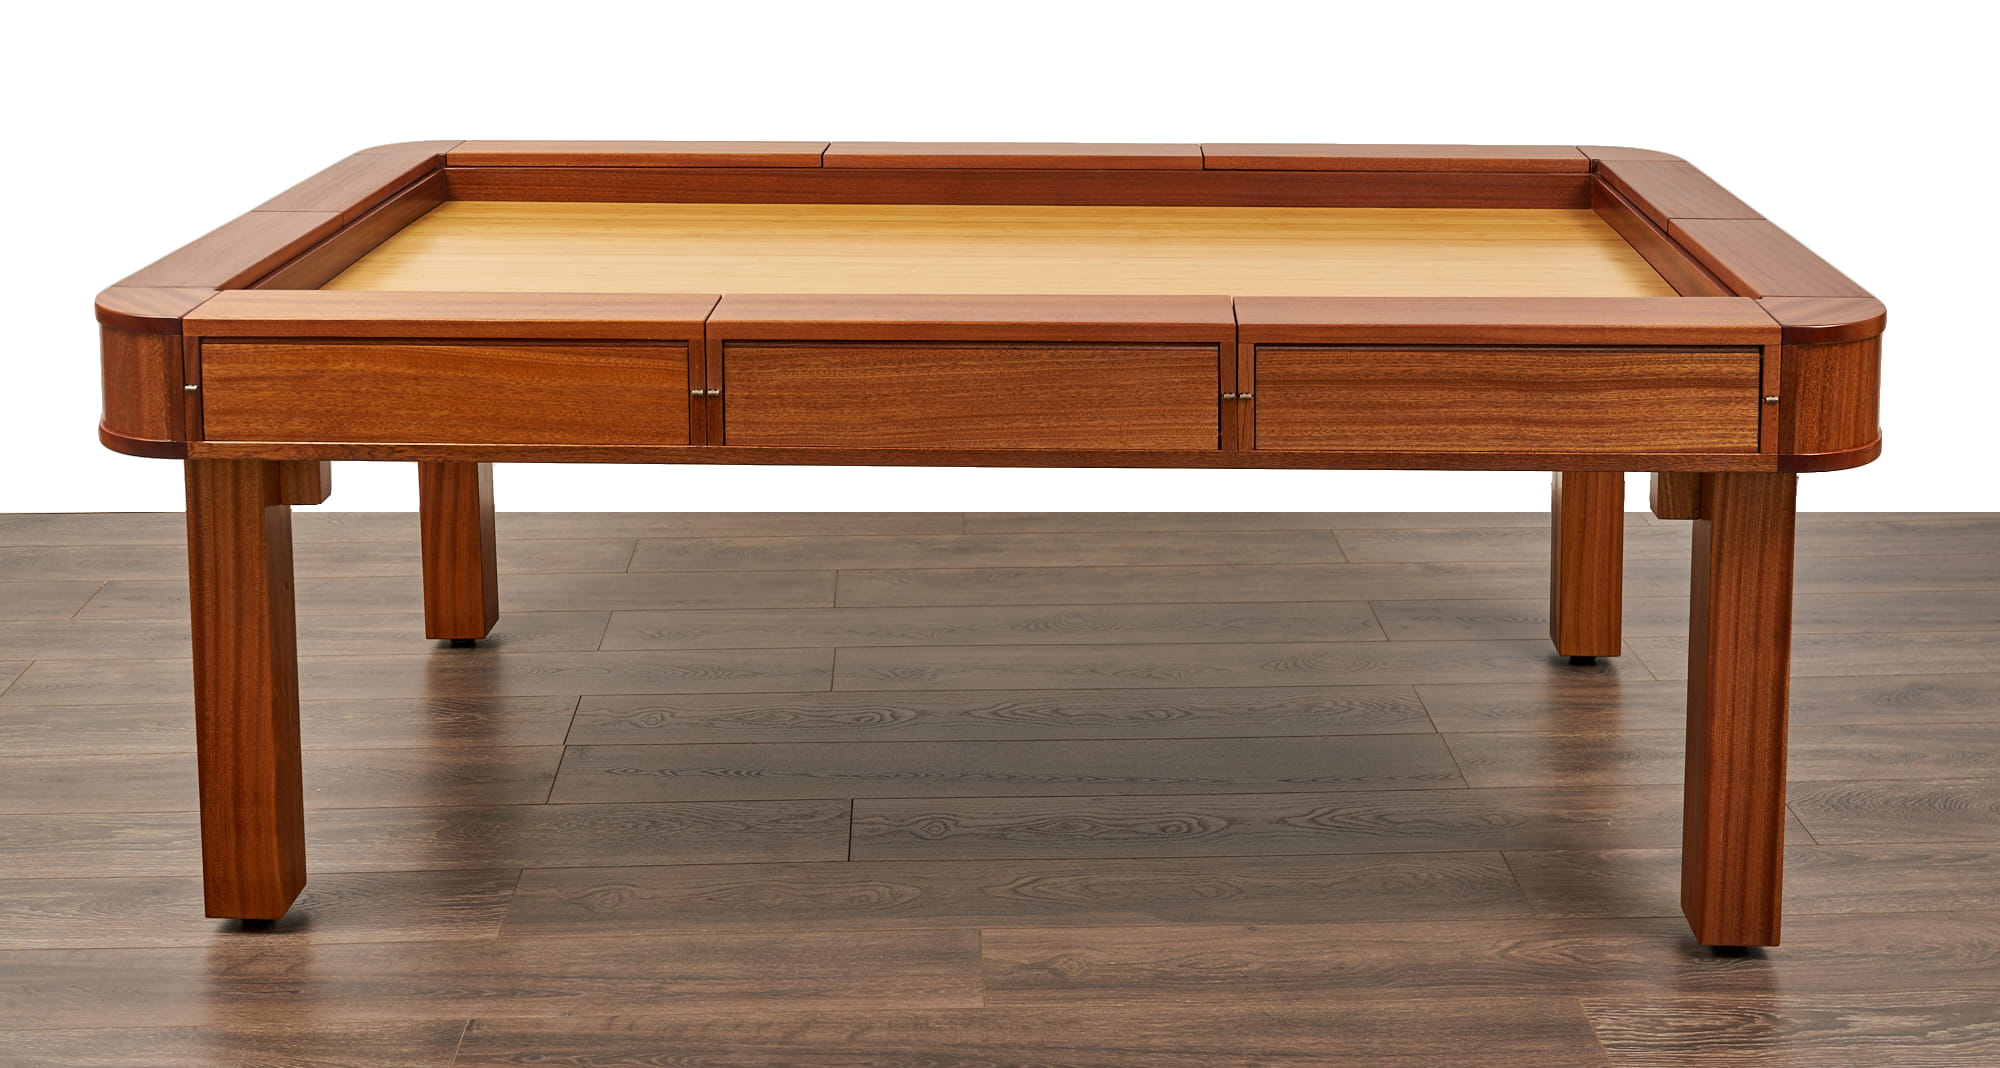 Vizier reproduction gaming table by uniquley geek